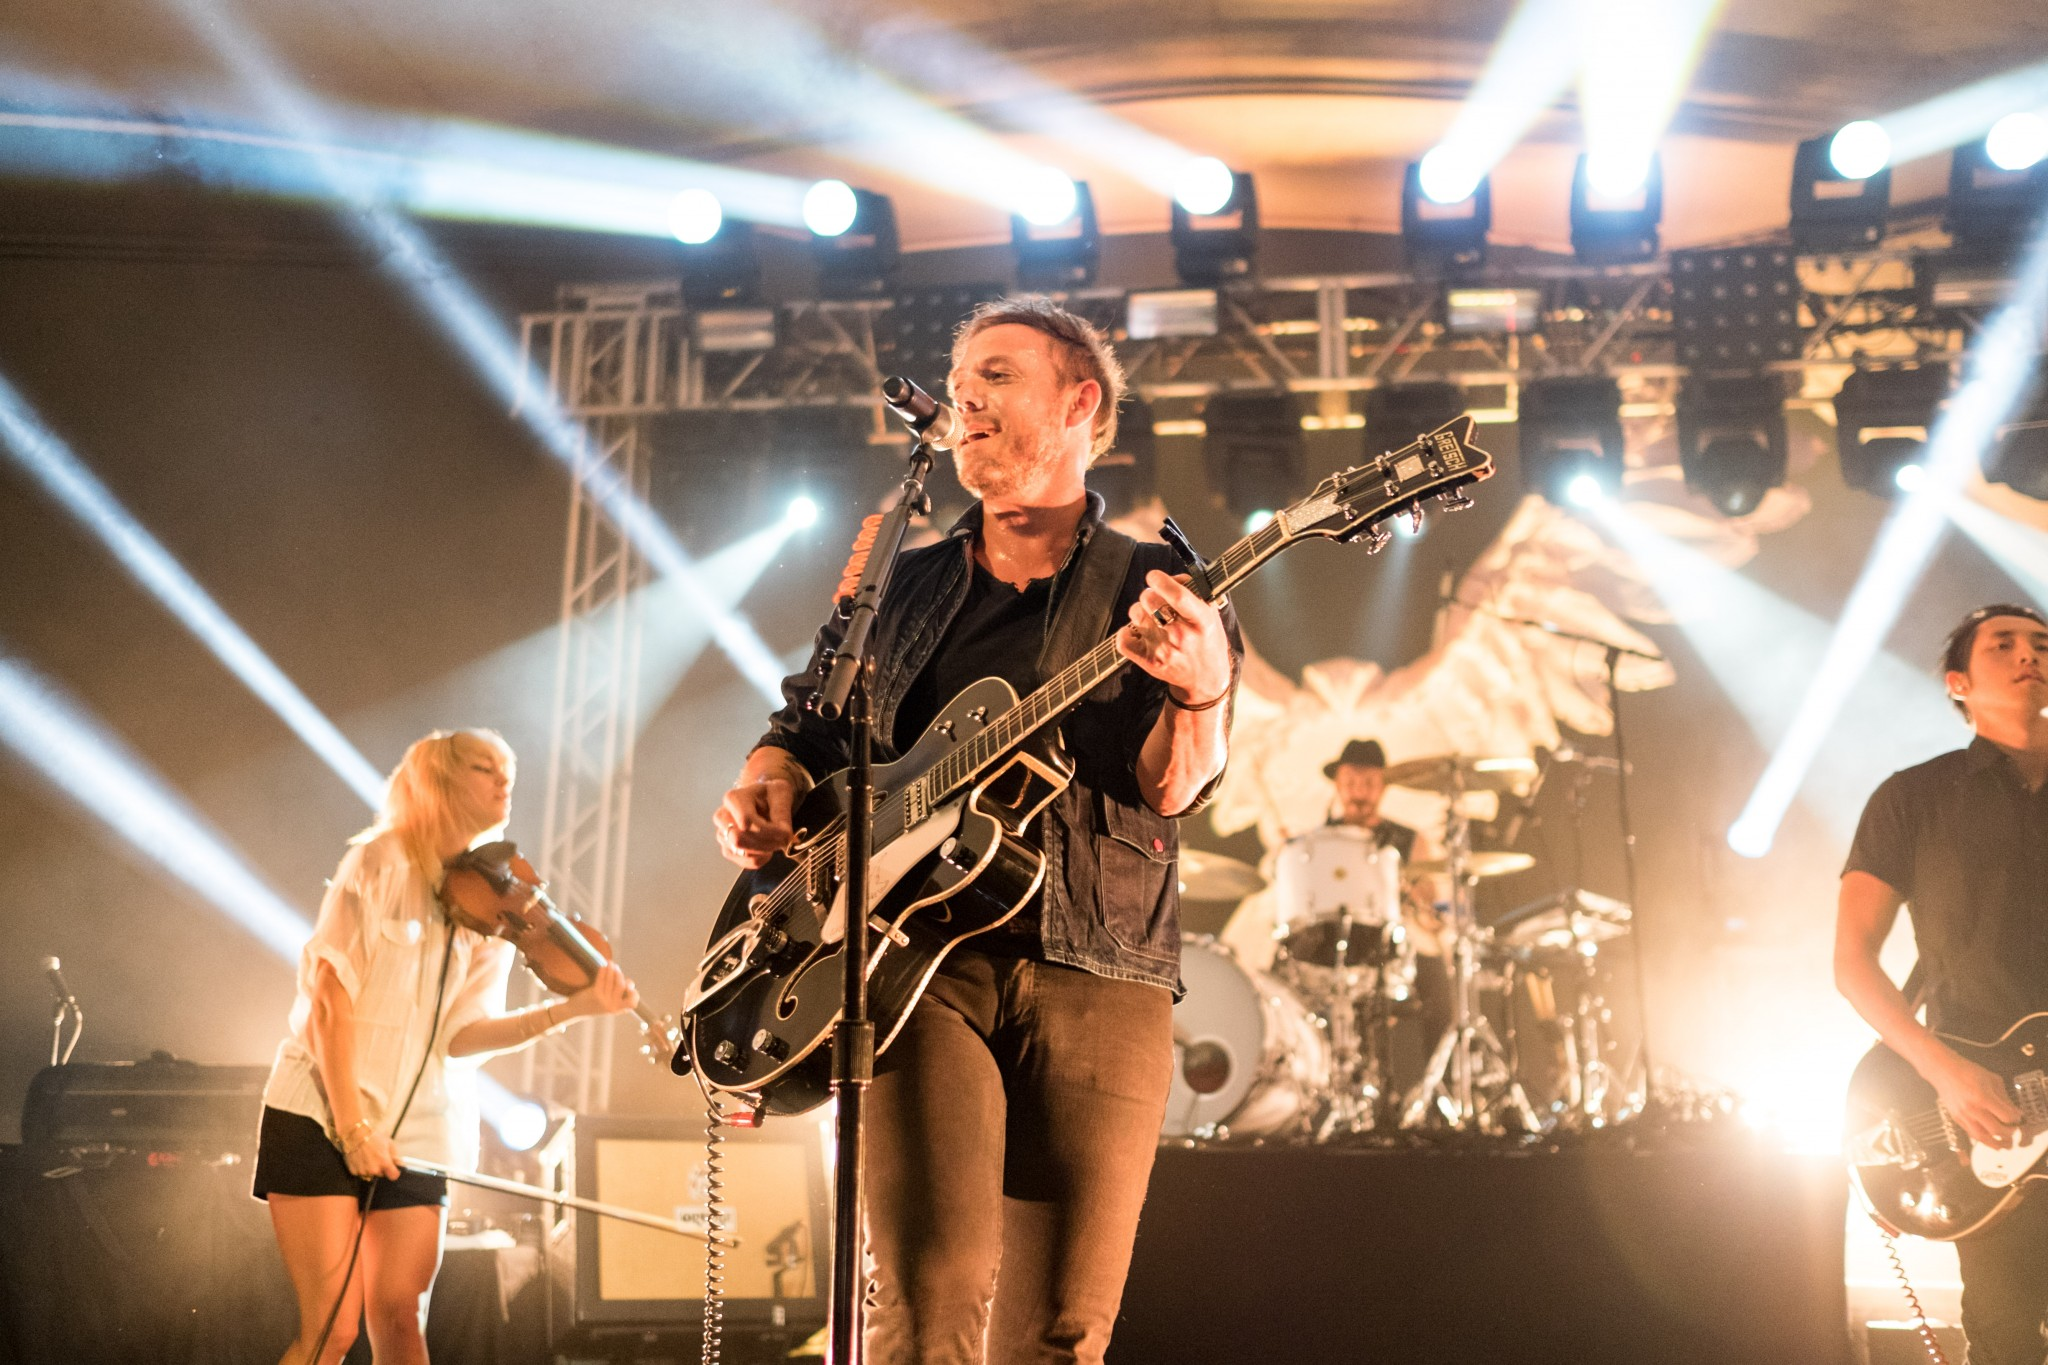 The Airborne Toxic Event at Stubbs in Austin 2014